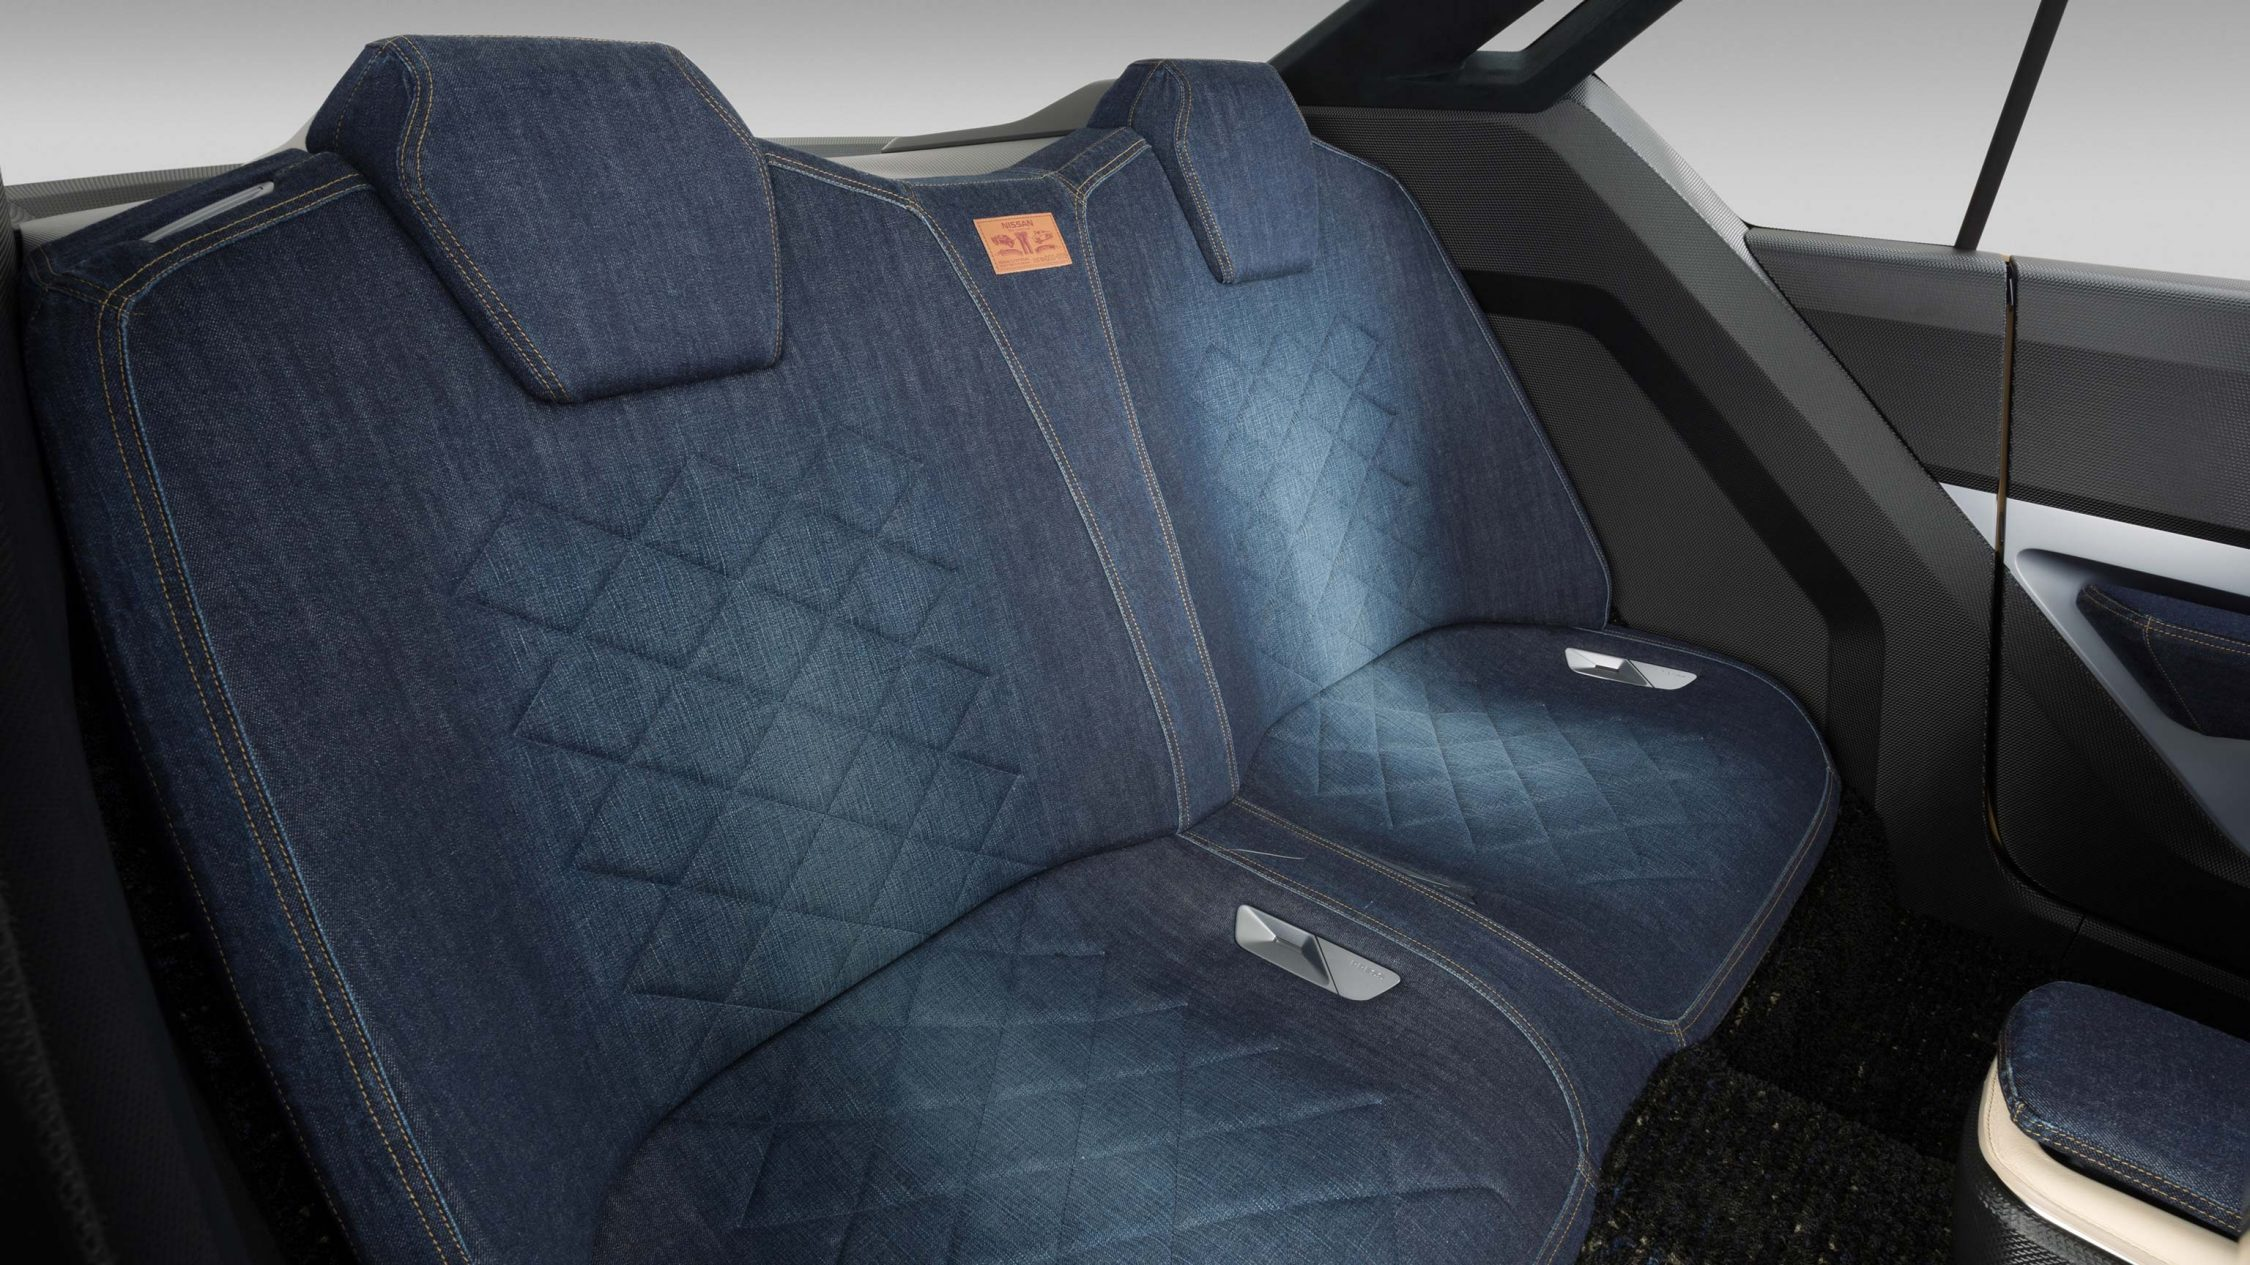 Nissan IDX Freeflow Concept. Gallery seat fabric detail.